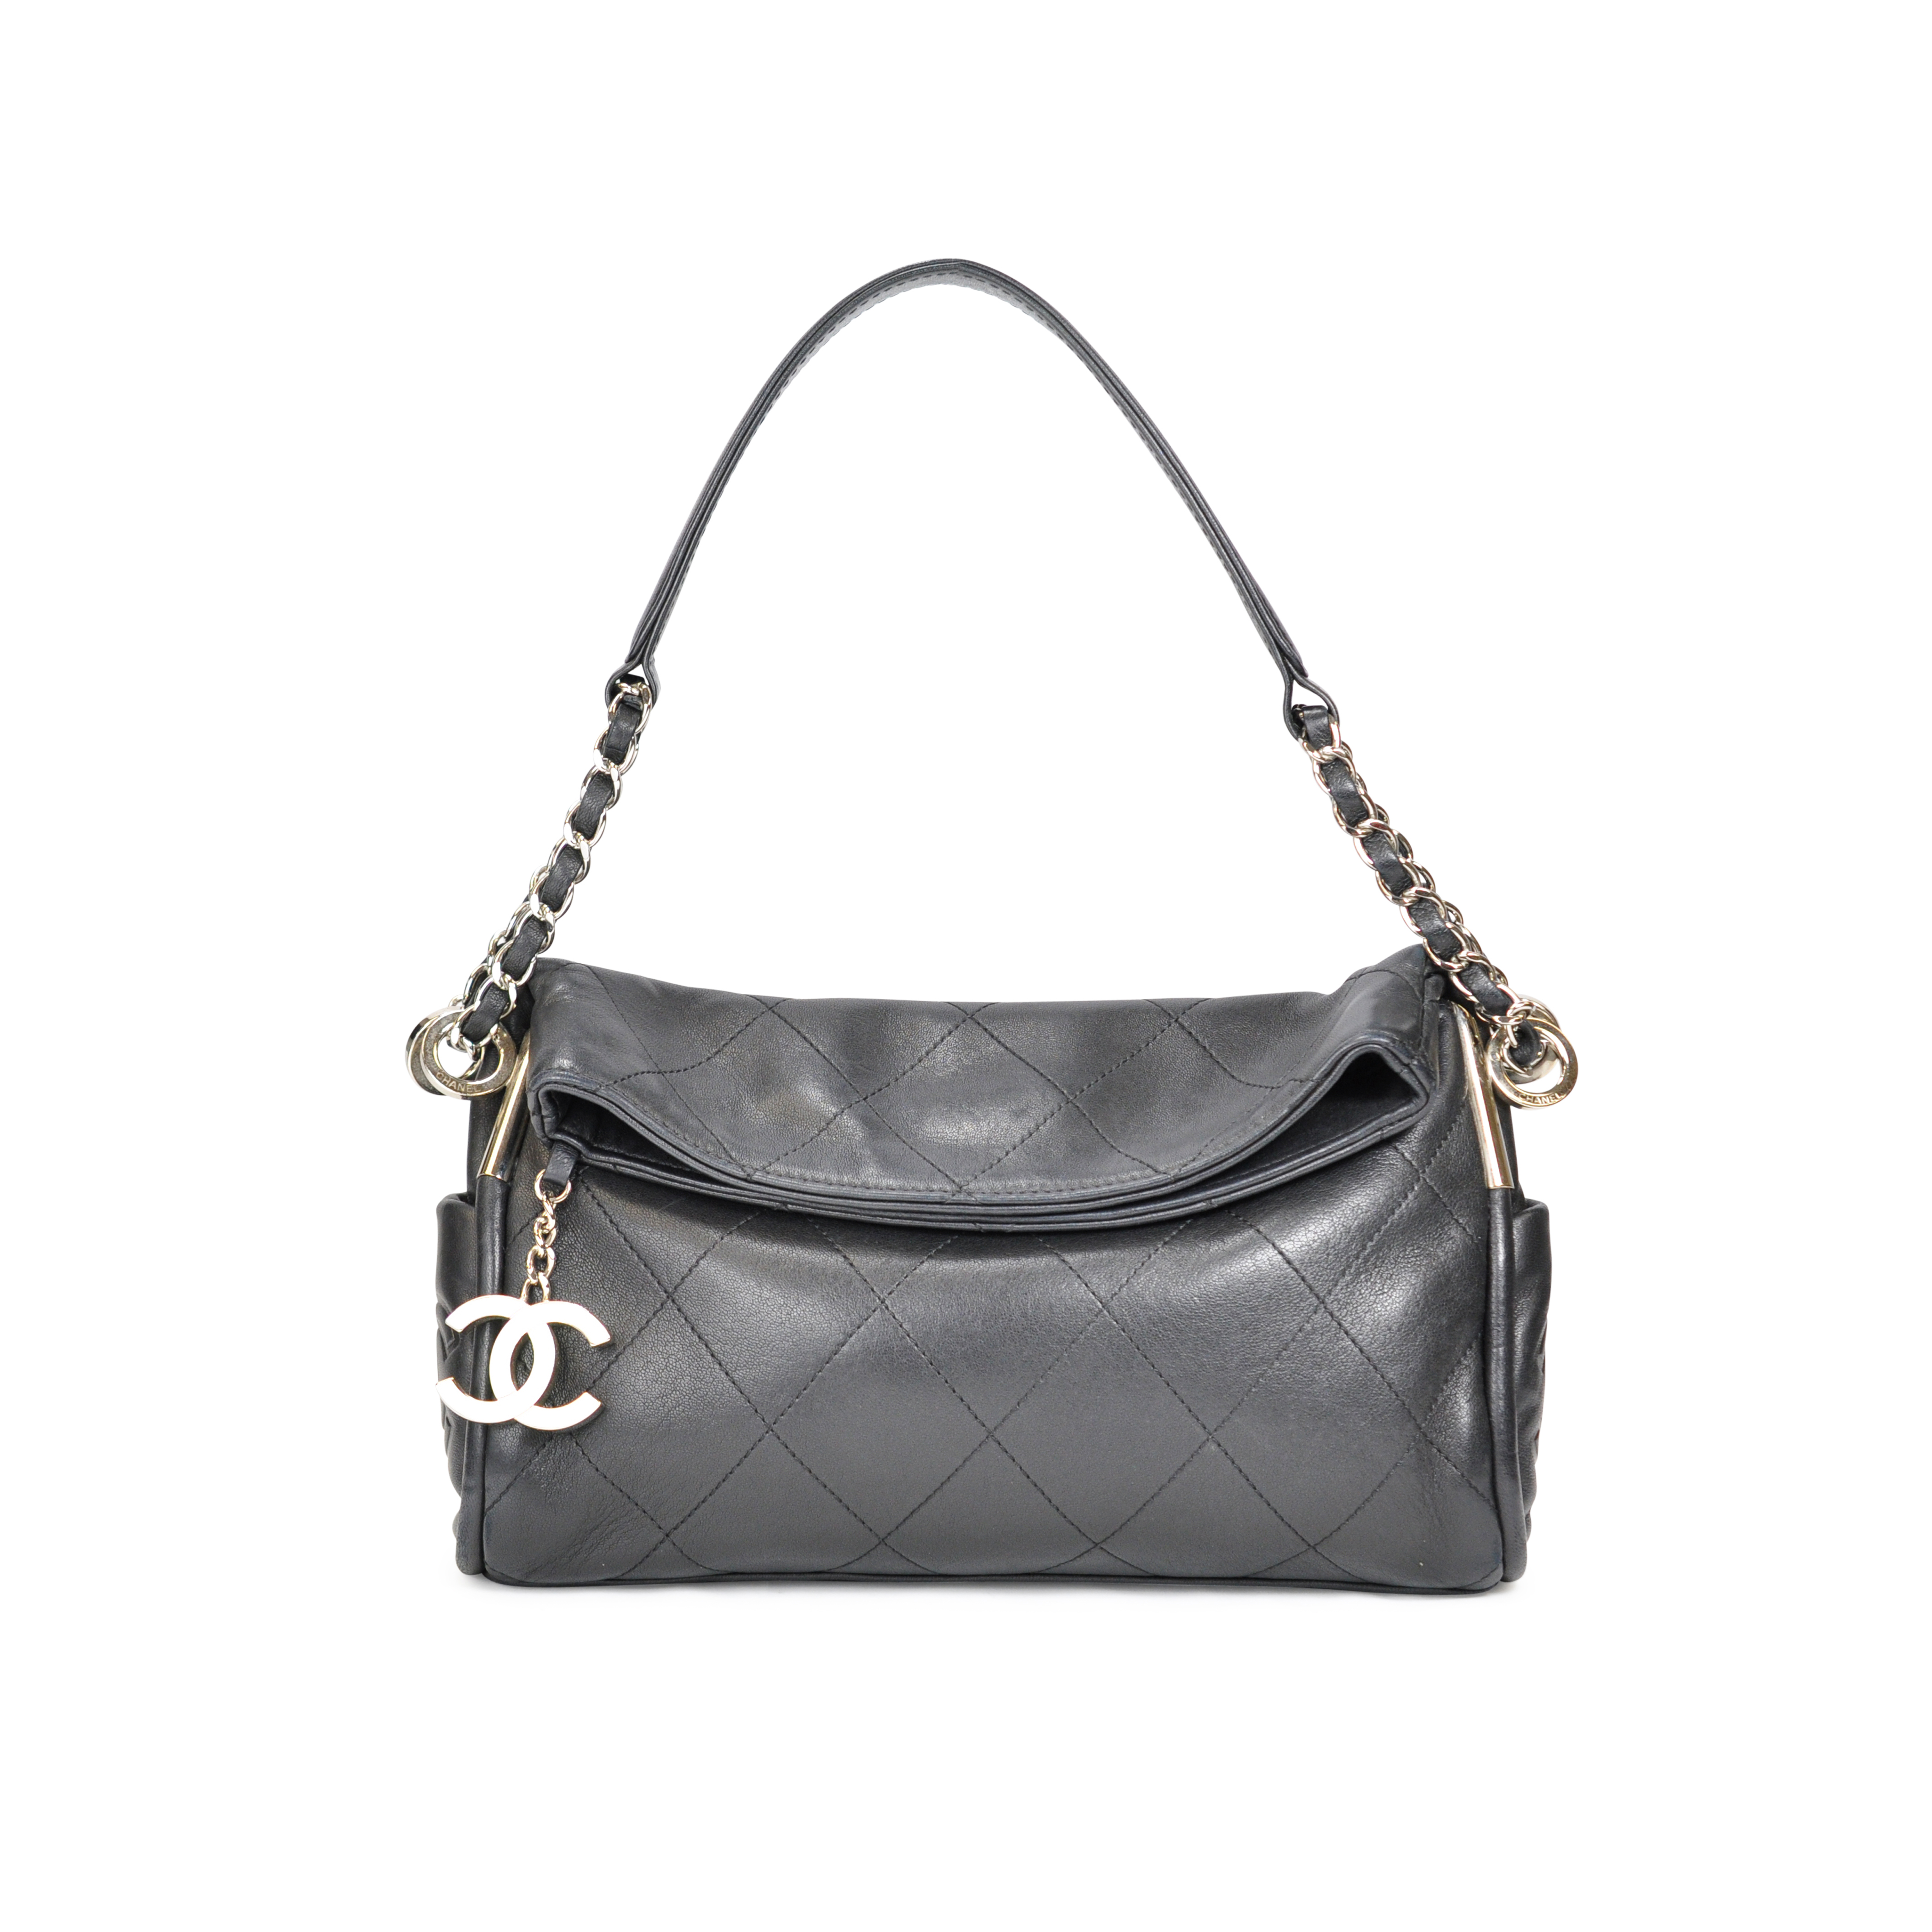 667eaebc3272fe Authentic Second Hand Chanel Ultimate Soft Quilt Bag Pss 001 00026